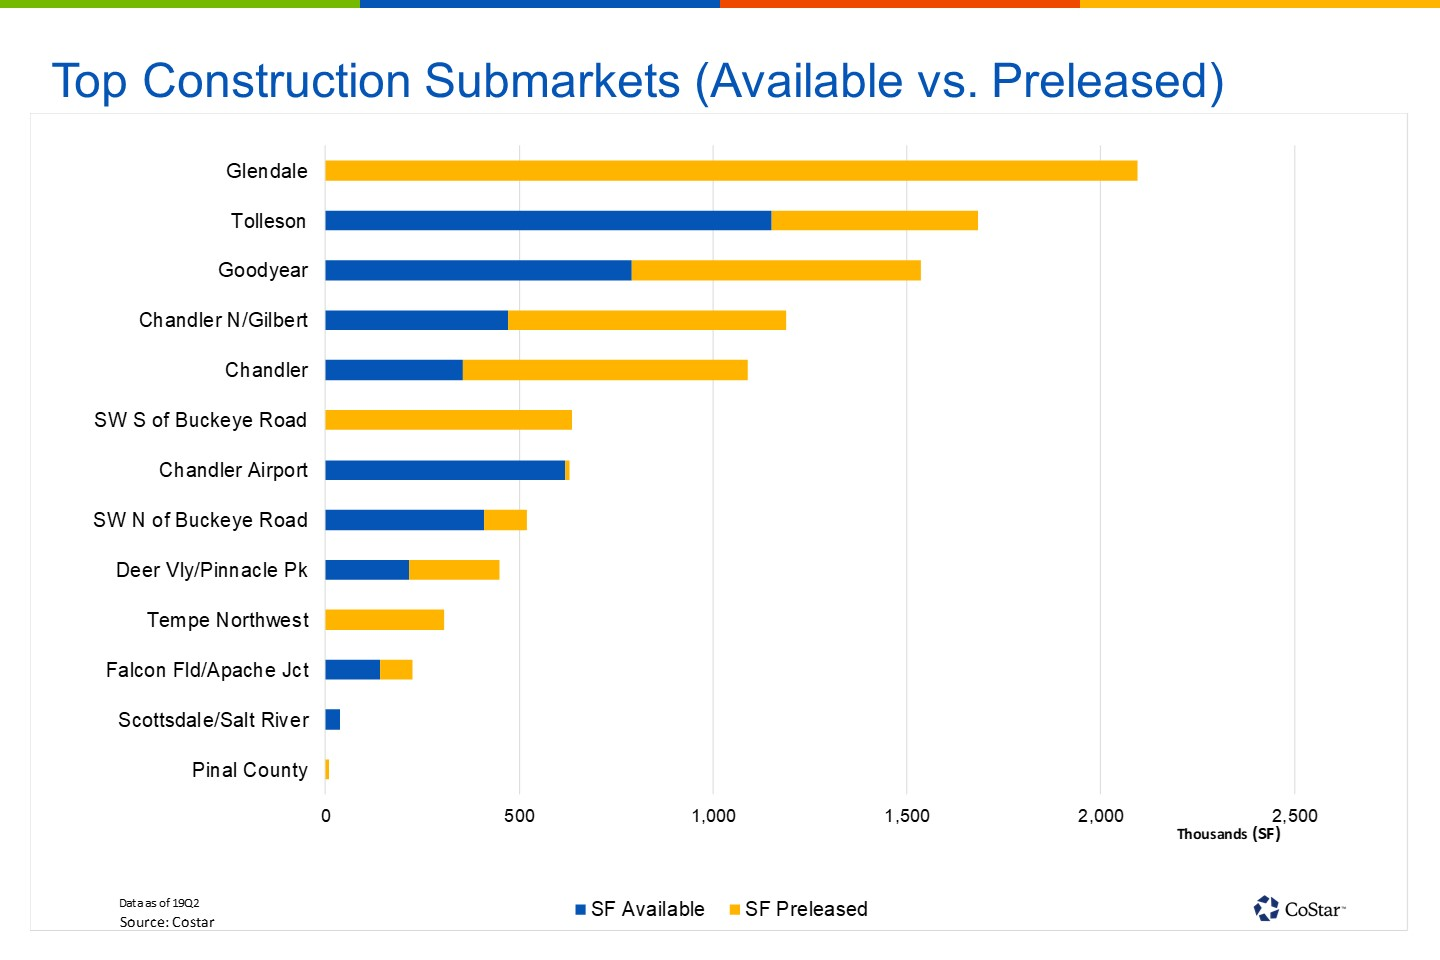 Glendale, Arizona, is leading all submarkets in new construction, though all space underway is preleased. Tolleson and Goodyear will receive a wave of speculative deliveries over the next few quarters.